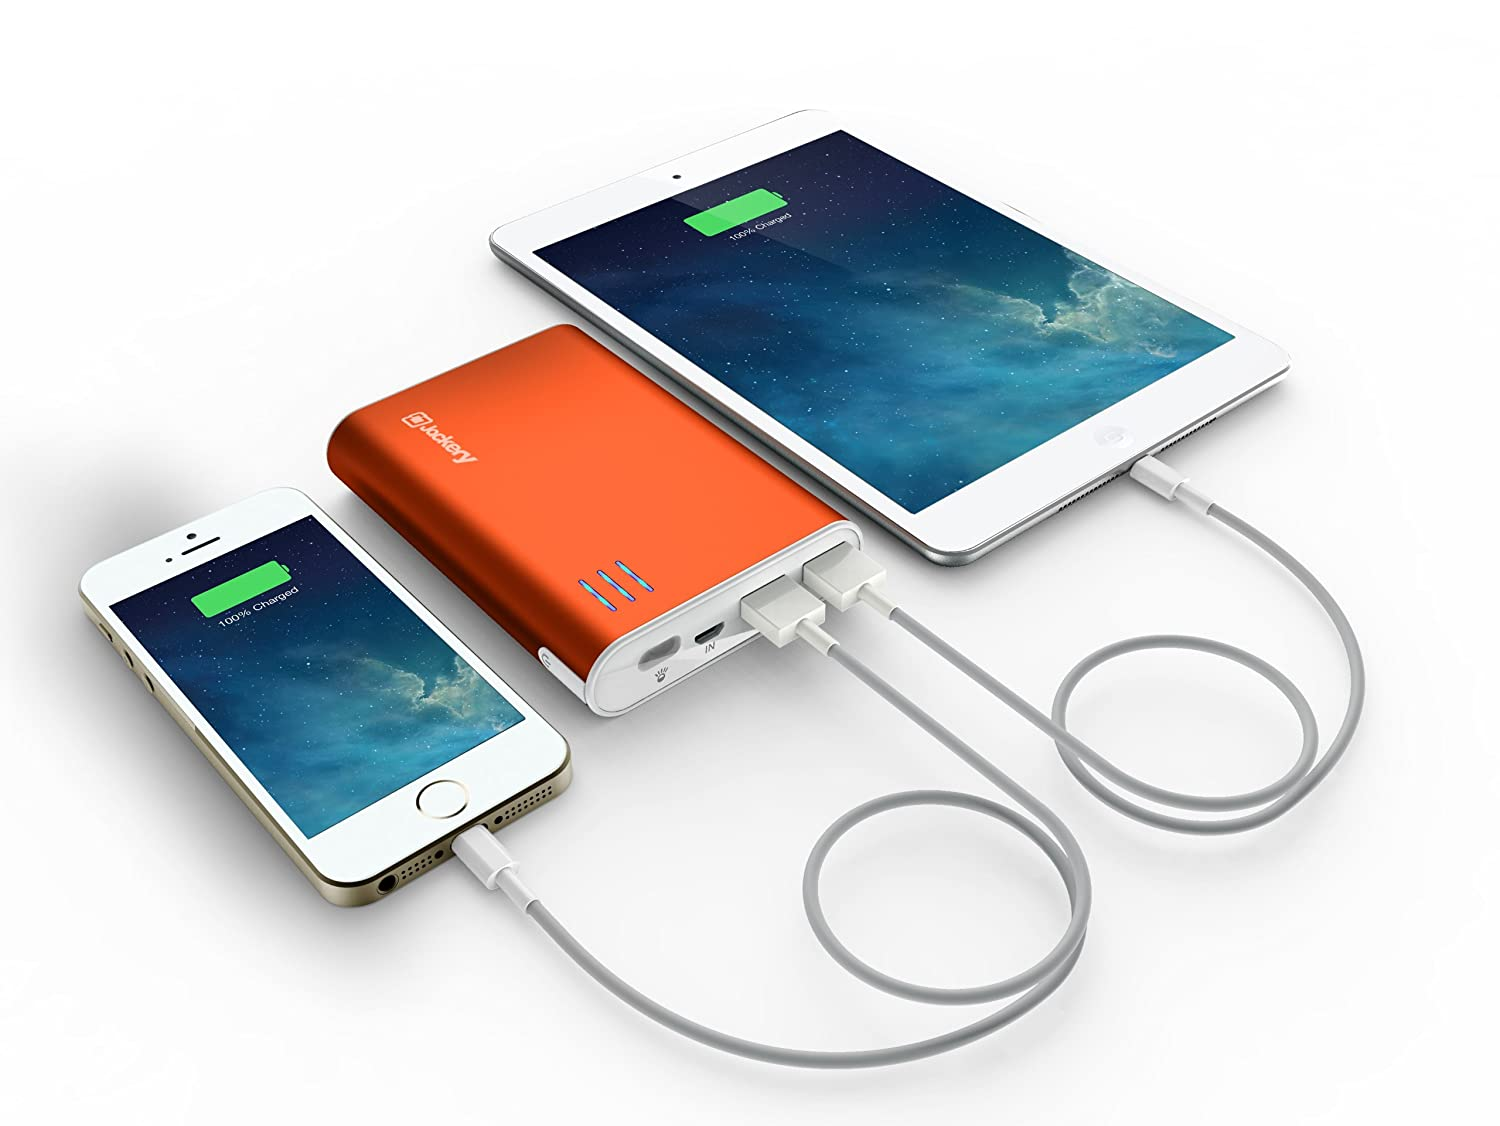 Be sure to check out this fantastic 1-day deal we found on this top-rated  portable charger that works with iPhone 2d2a19856c87d